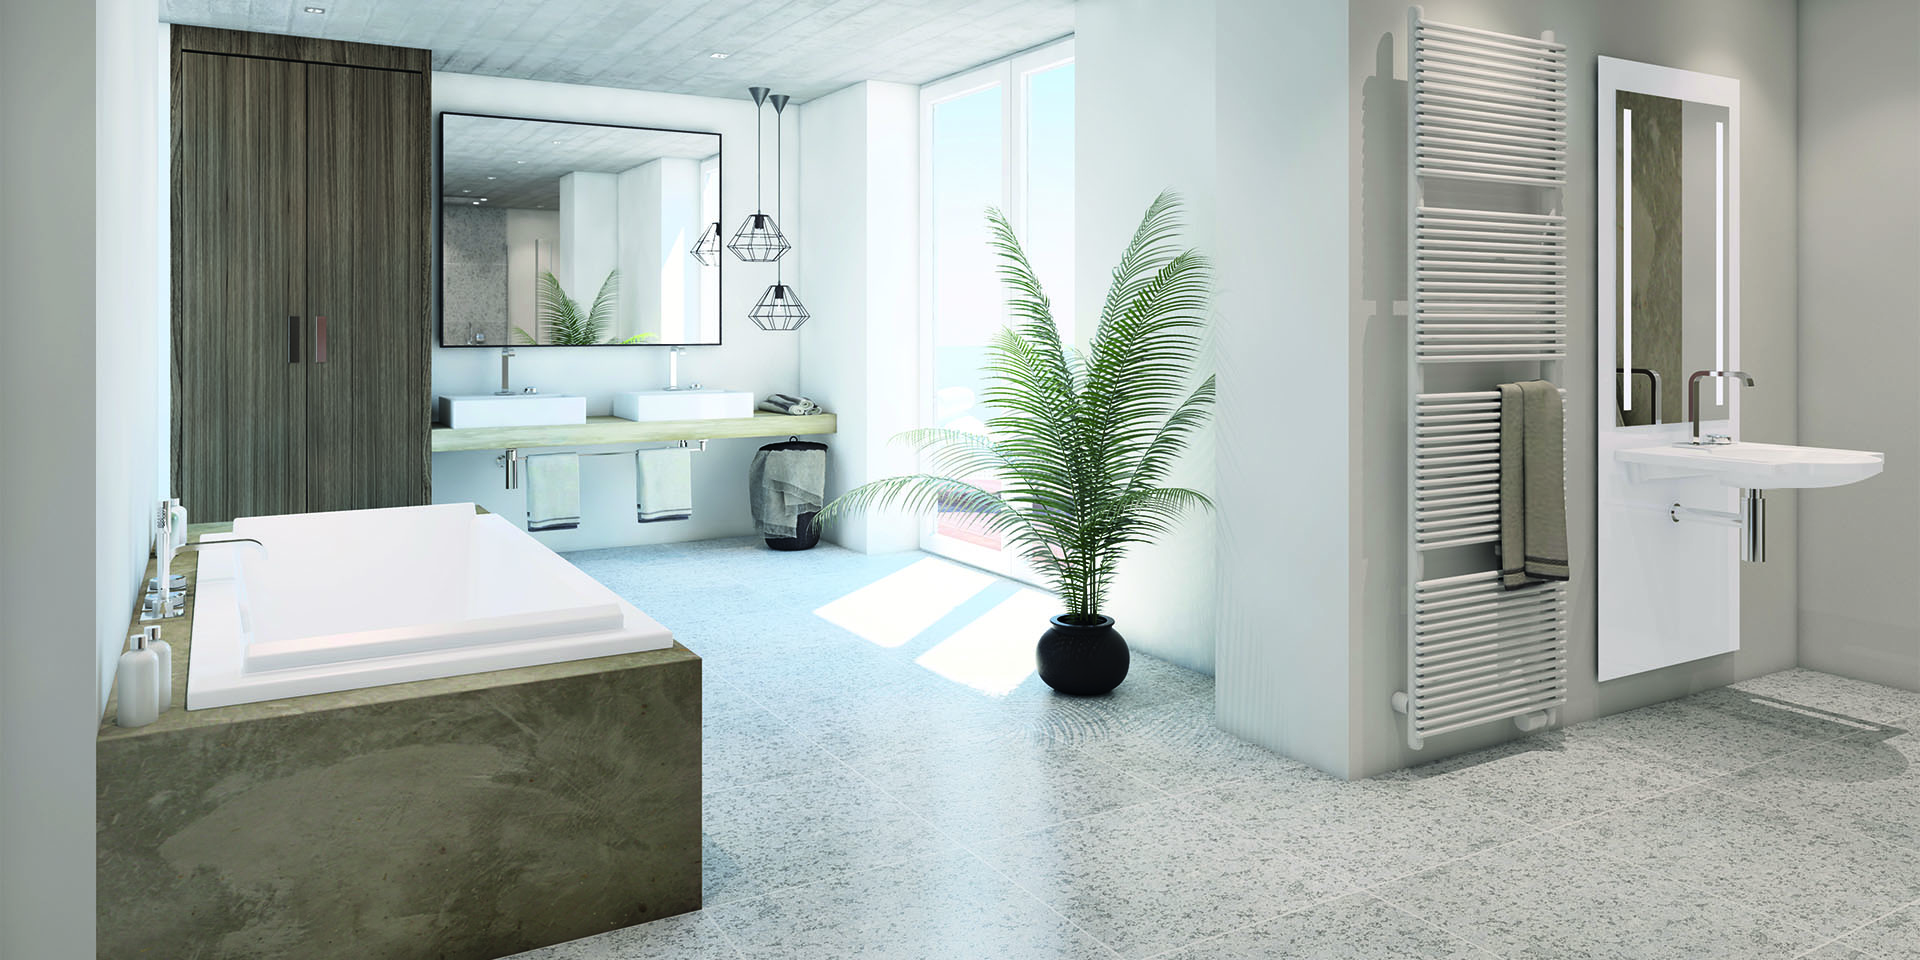 International Day of Older Persons: Accessible Bathroom Planning with GROHE as an Expert